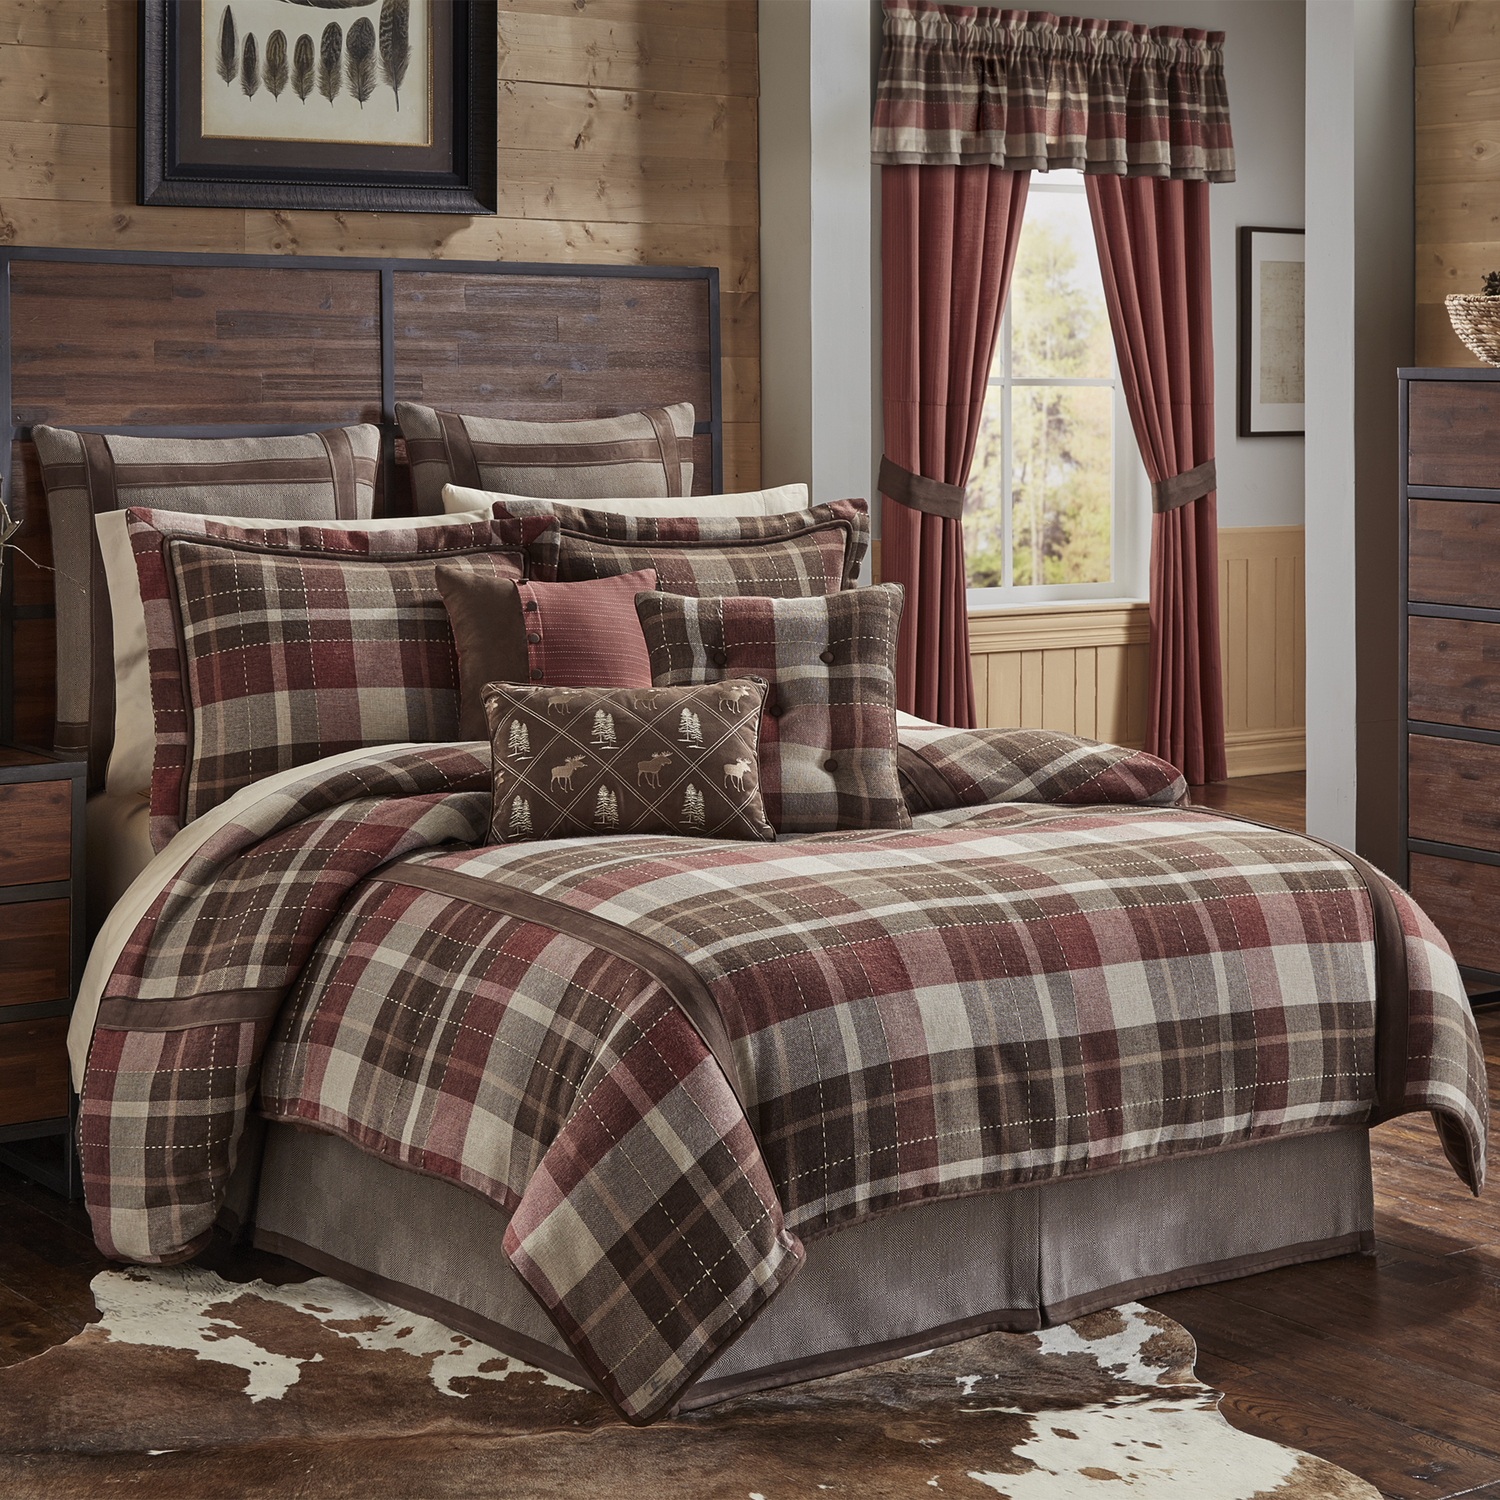 home bed bedding stores design in outlet sets at beautiful mesmerizing remodel your small croscill for bedroom dillards